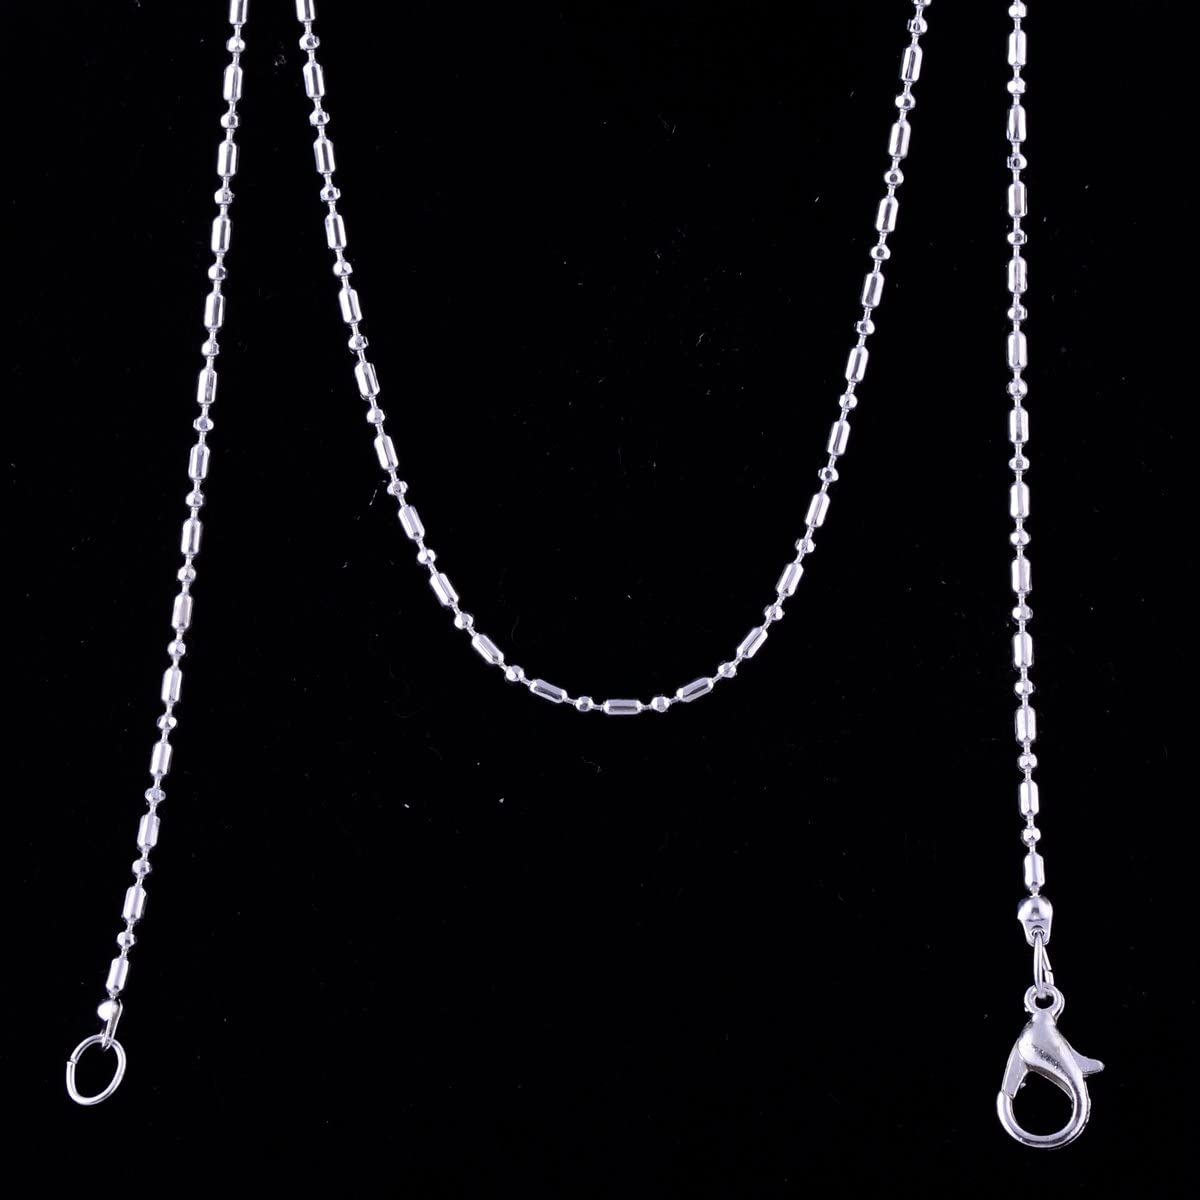 Jewelry Making Chains 24pcs 925 Sterling Silver Plated Cable Chain Necklace 18inch with Lobster Clasp Wholesale Chains Bulk DIY Charm for Jewelry Making Water Wave Chain